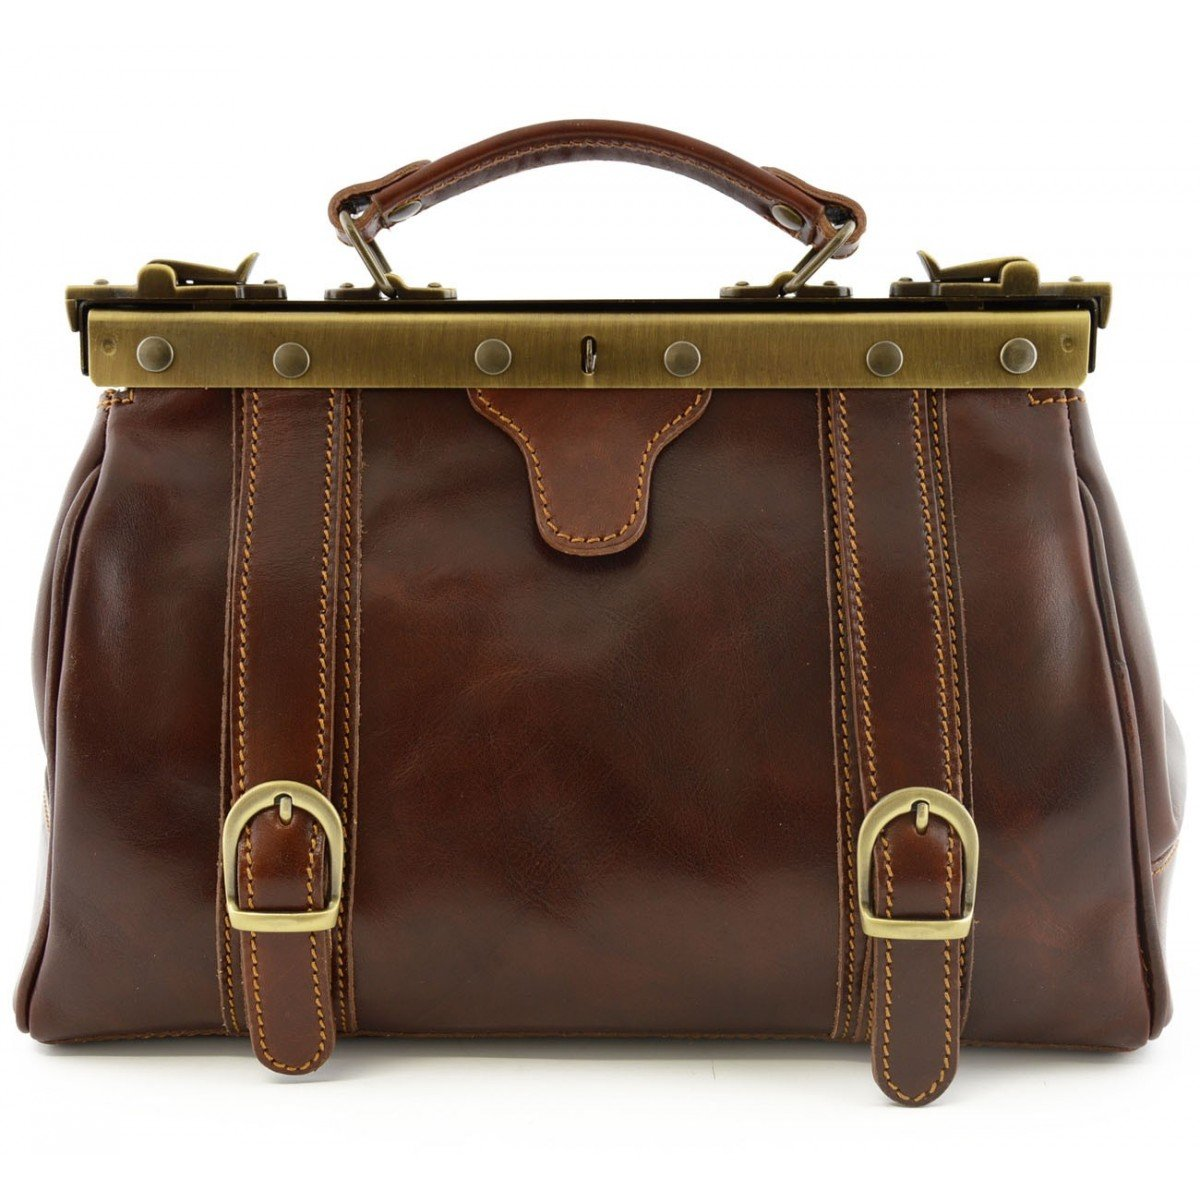 Made In Italy Genuine Leather Doctor Bag, 2 Front Buckles Color Brown - Business Bag   B015II6EDU